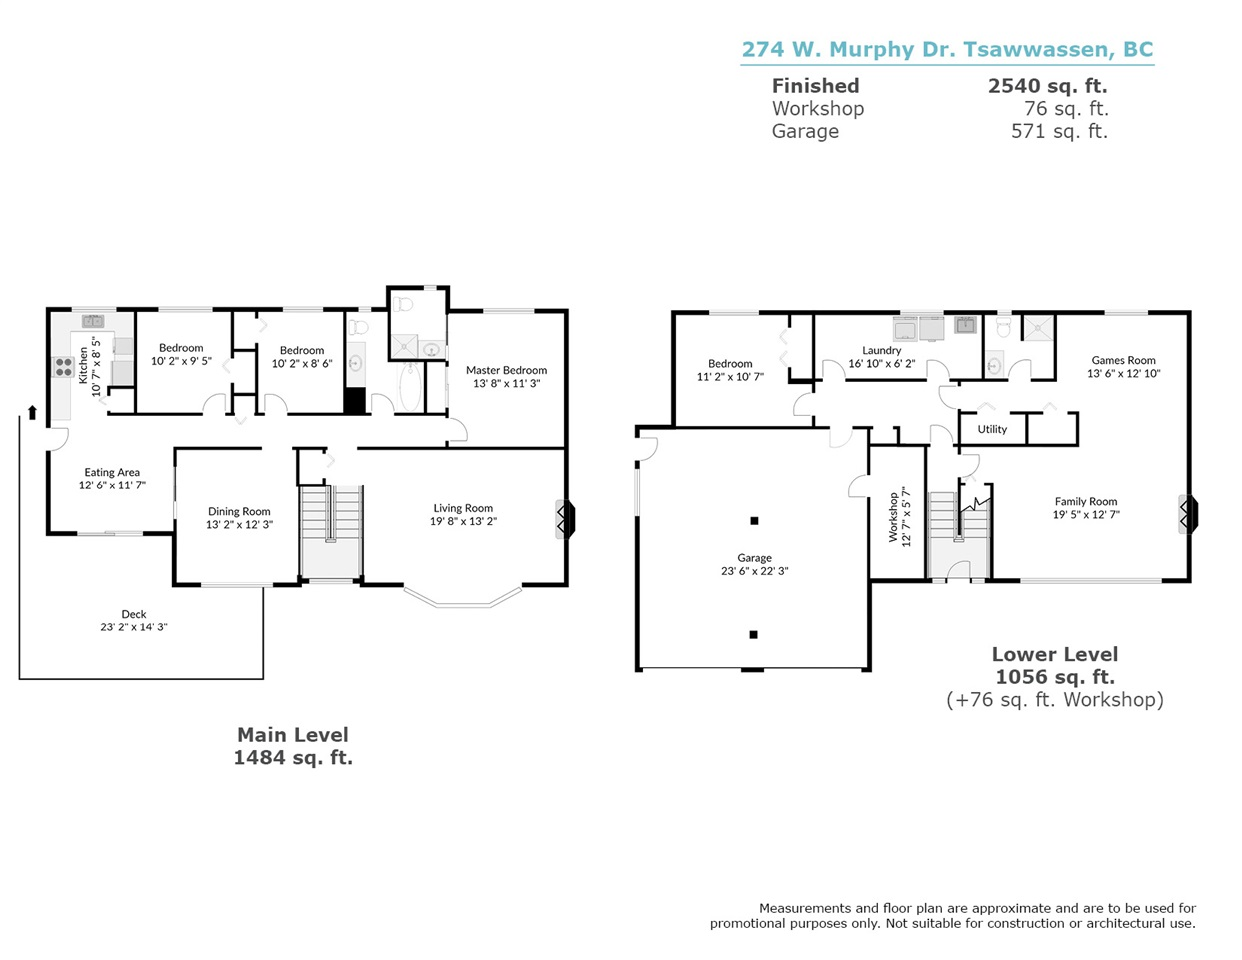 2617 sqft - large family home...bring your renovation ideas!